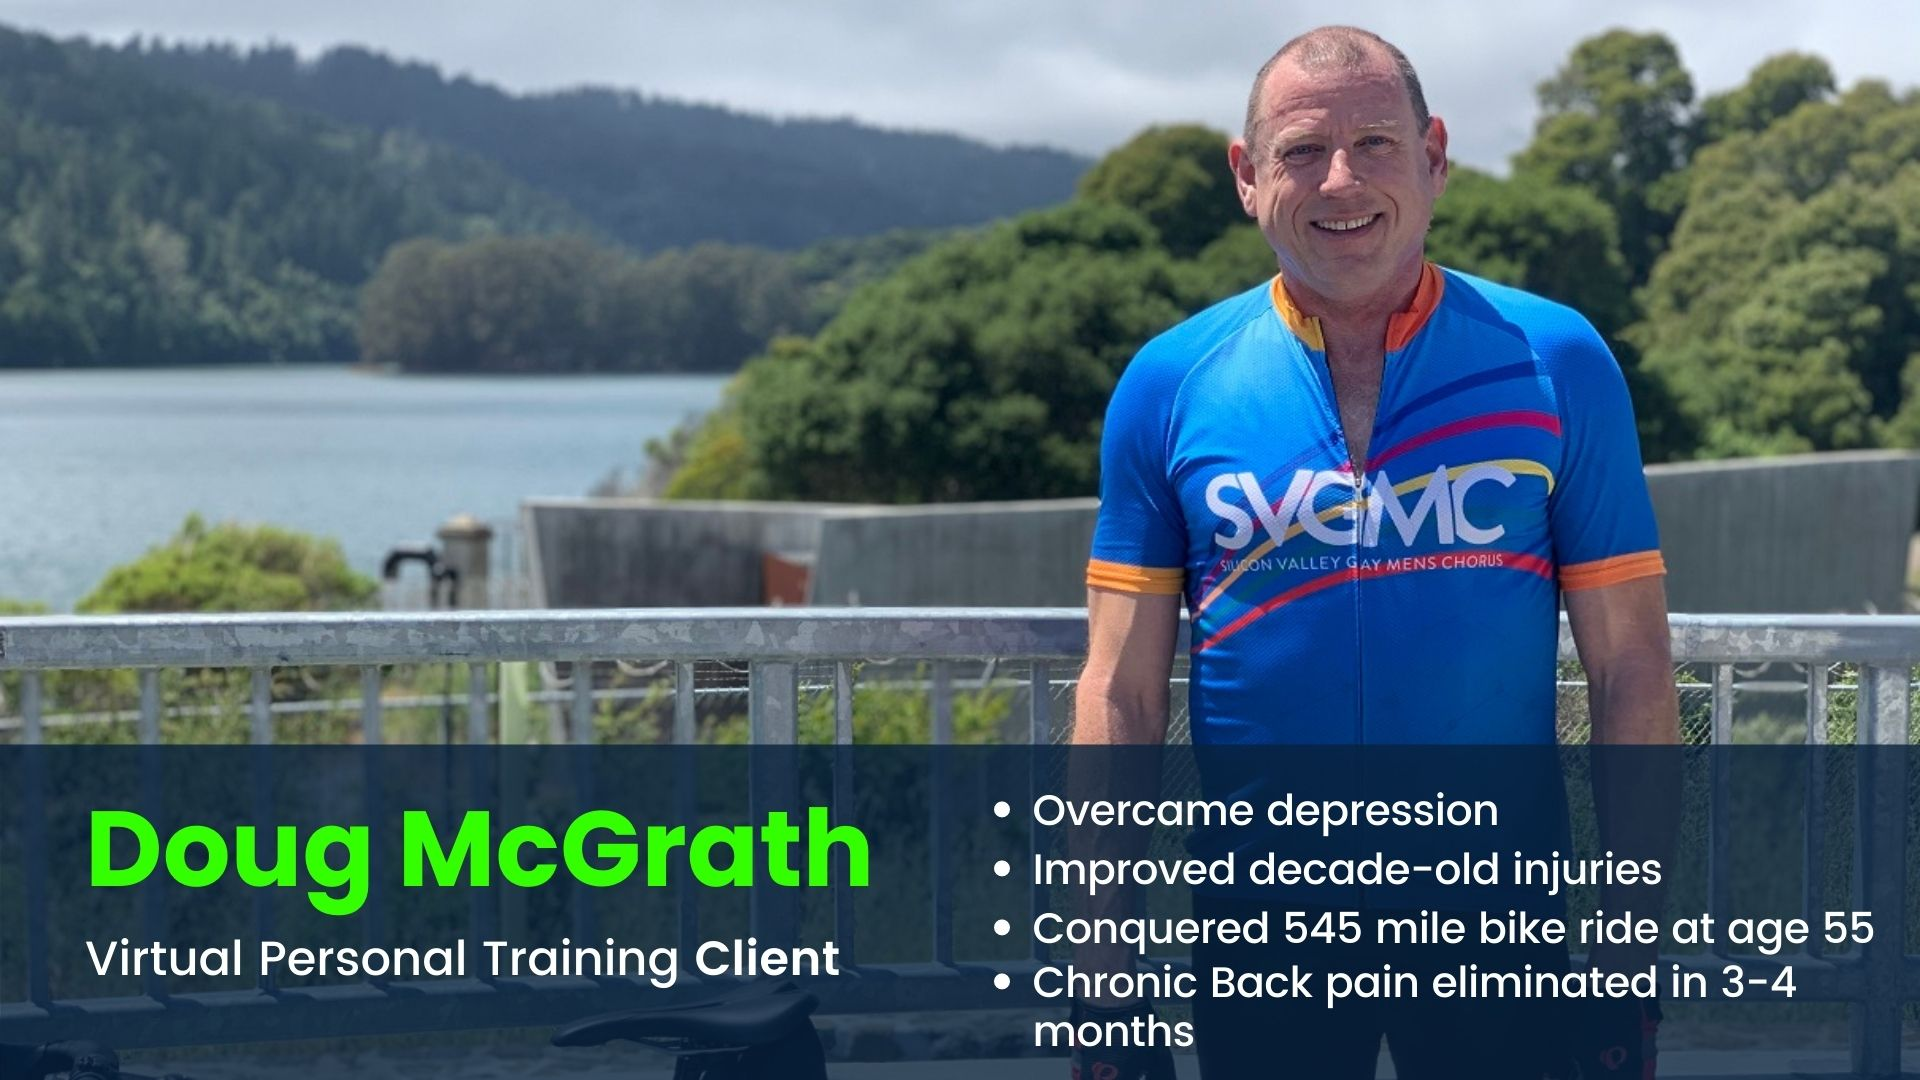 1-on-1 virtual training client improved old injuries and is riding his bike